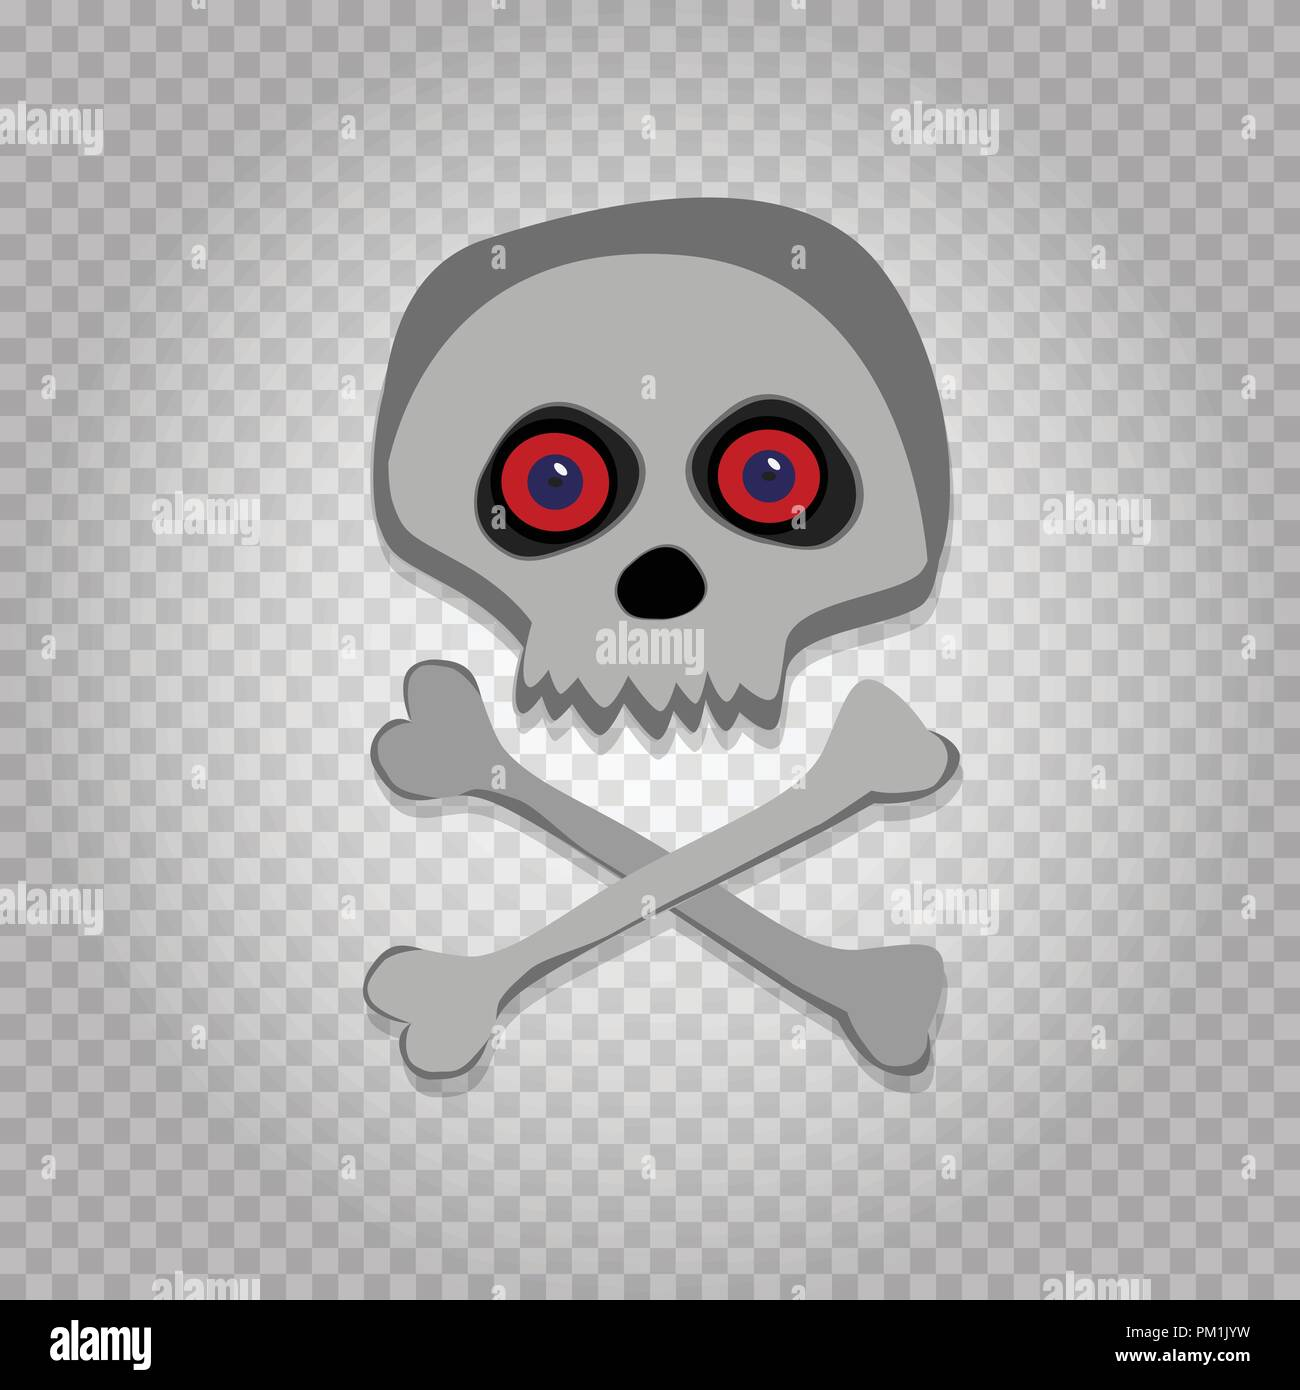 Vector Cartoon Skeleton Scull With Red Eyes Isolated On Transparent